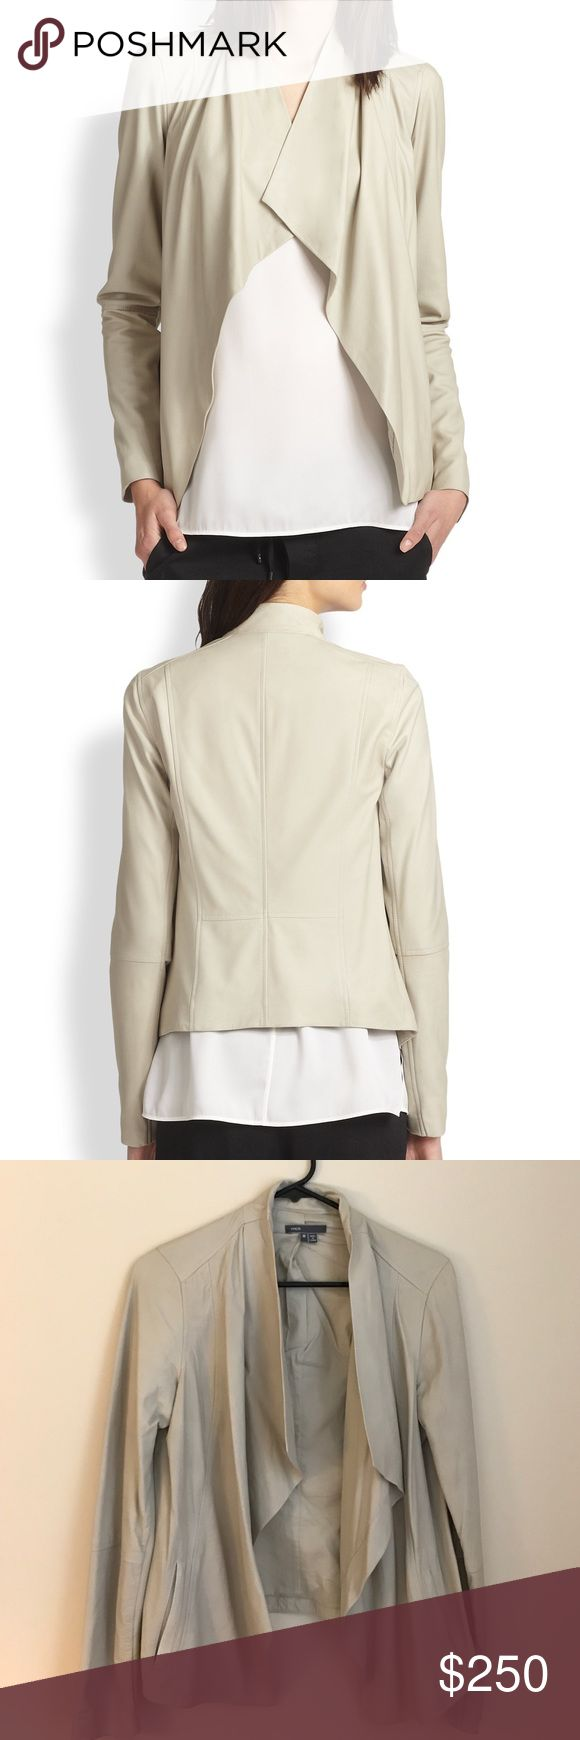 Vince Leather Jacket Beige leather jacket with cotton lining. Perfect layer for spring! Never been worn! Vince Jackets & Coats